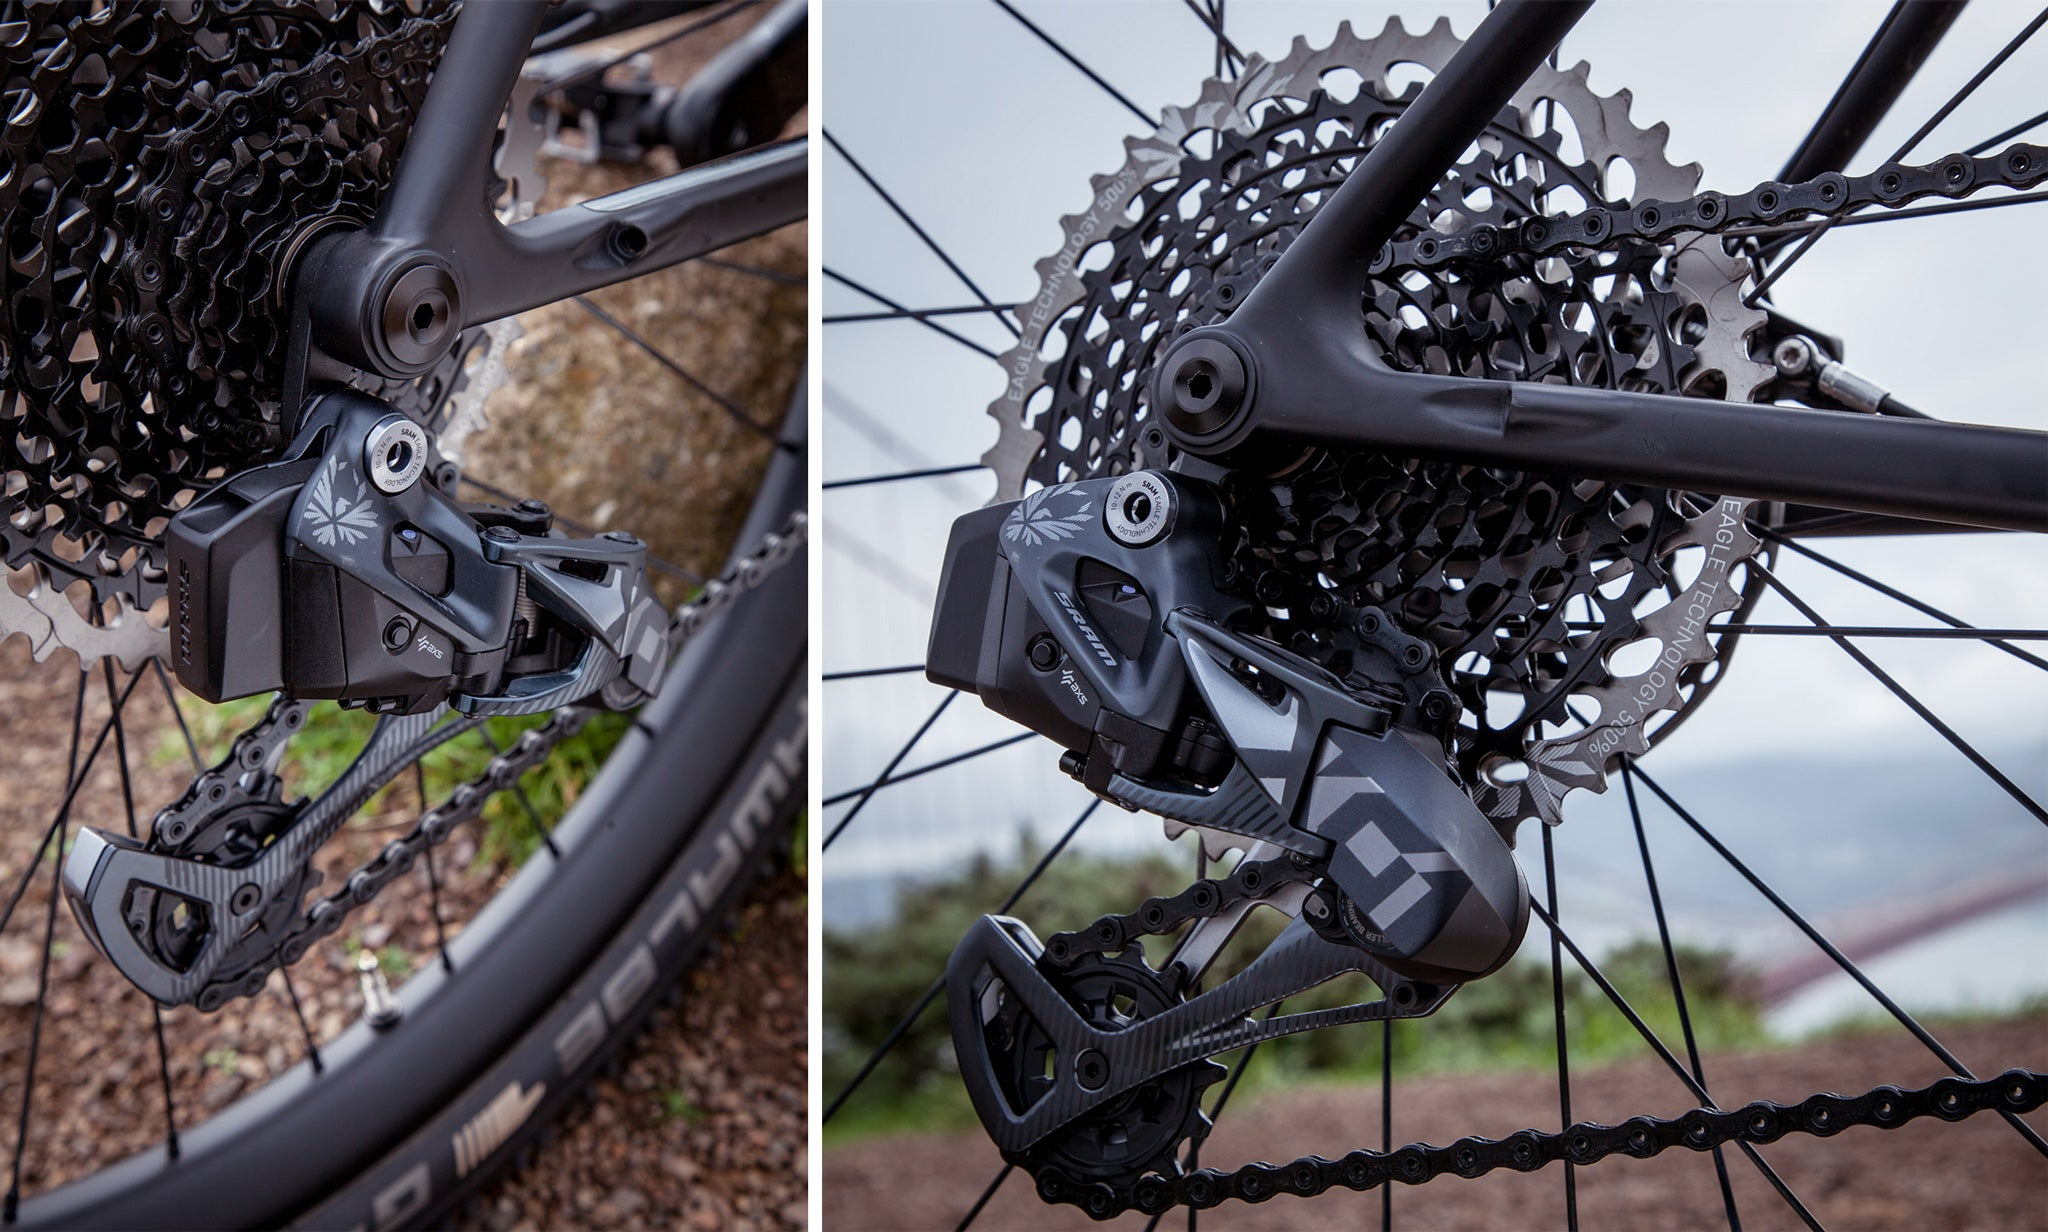 sram axs xo1 wireless mtb launch rear derailleur